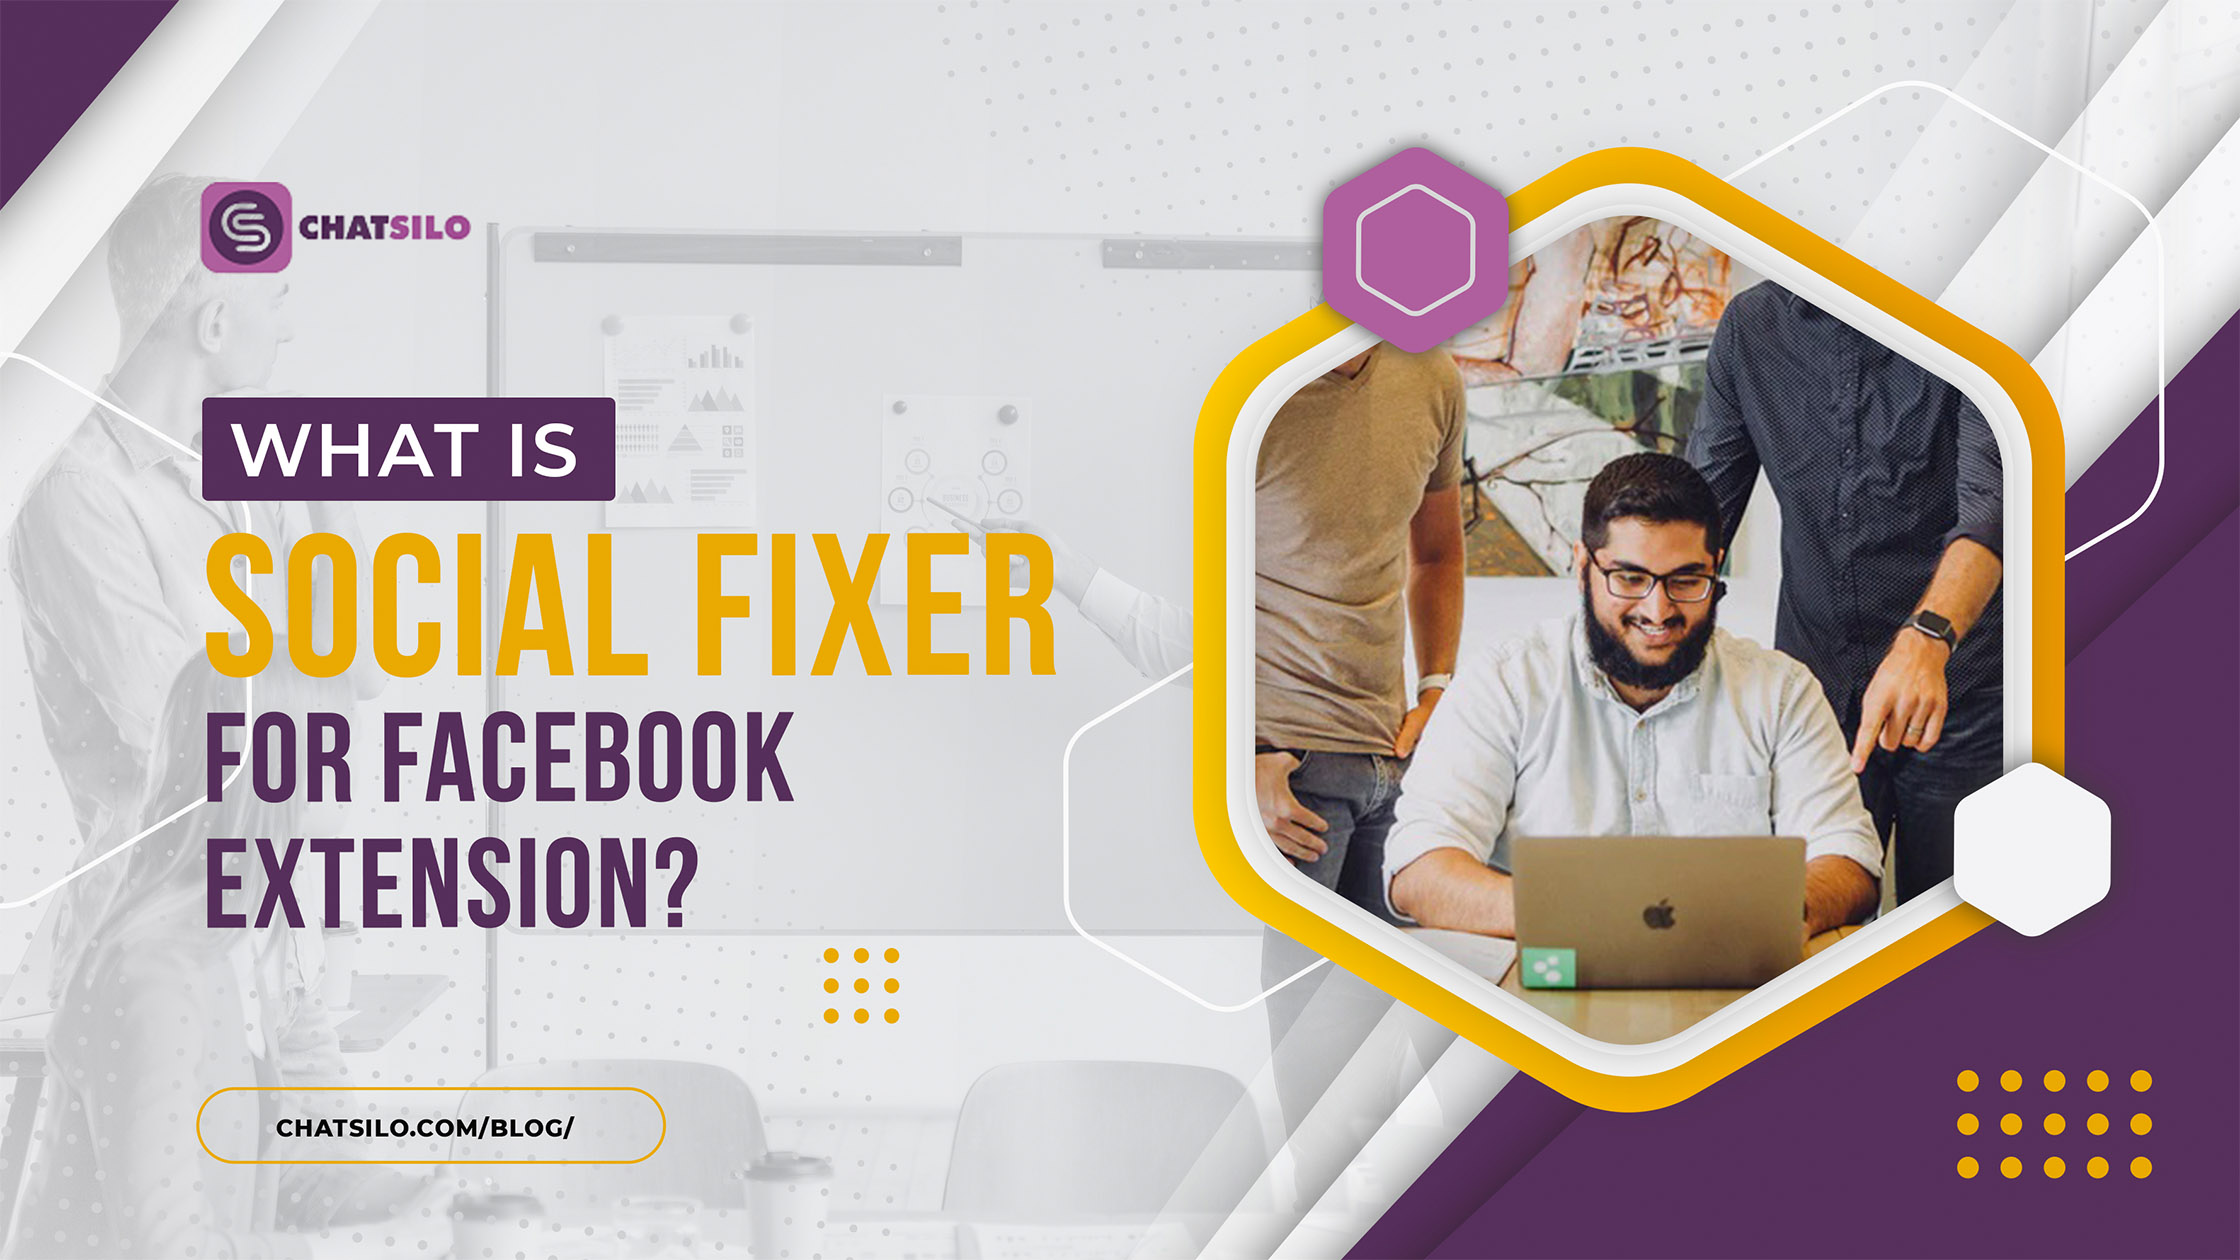 What is Social Fixer for Facebook Extension?